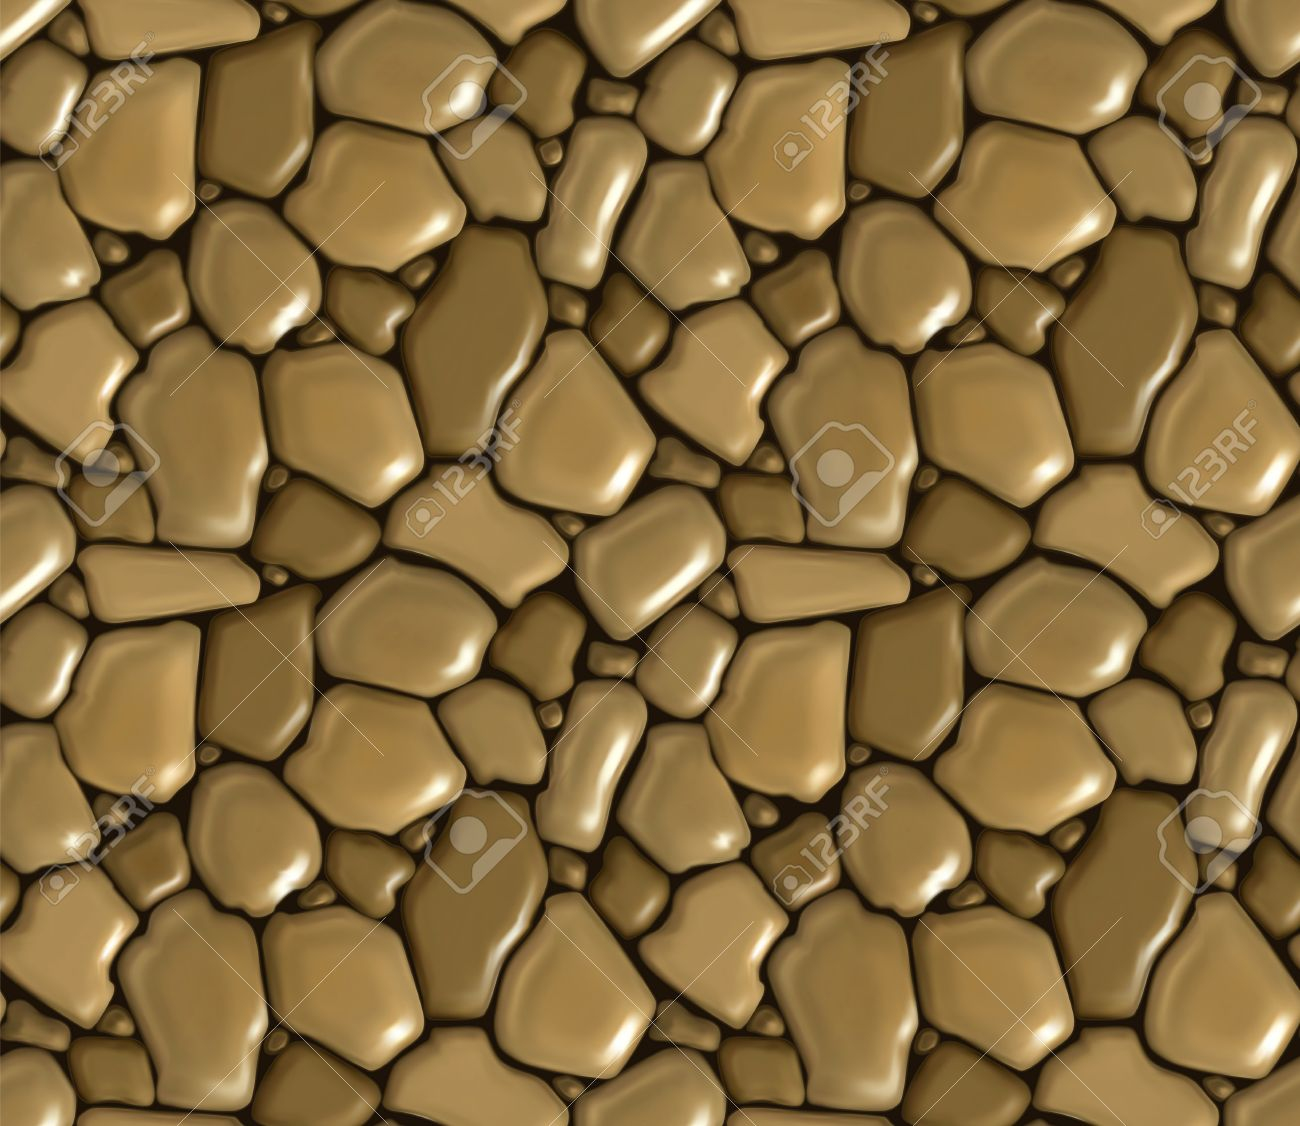 Rubble Masonry Seamless Royalty Free Cliparts, Vectors, And Stock.